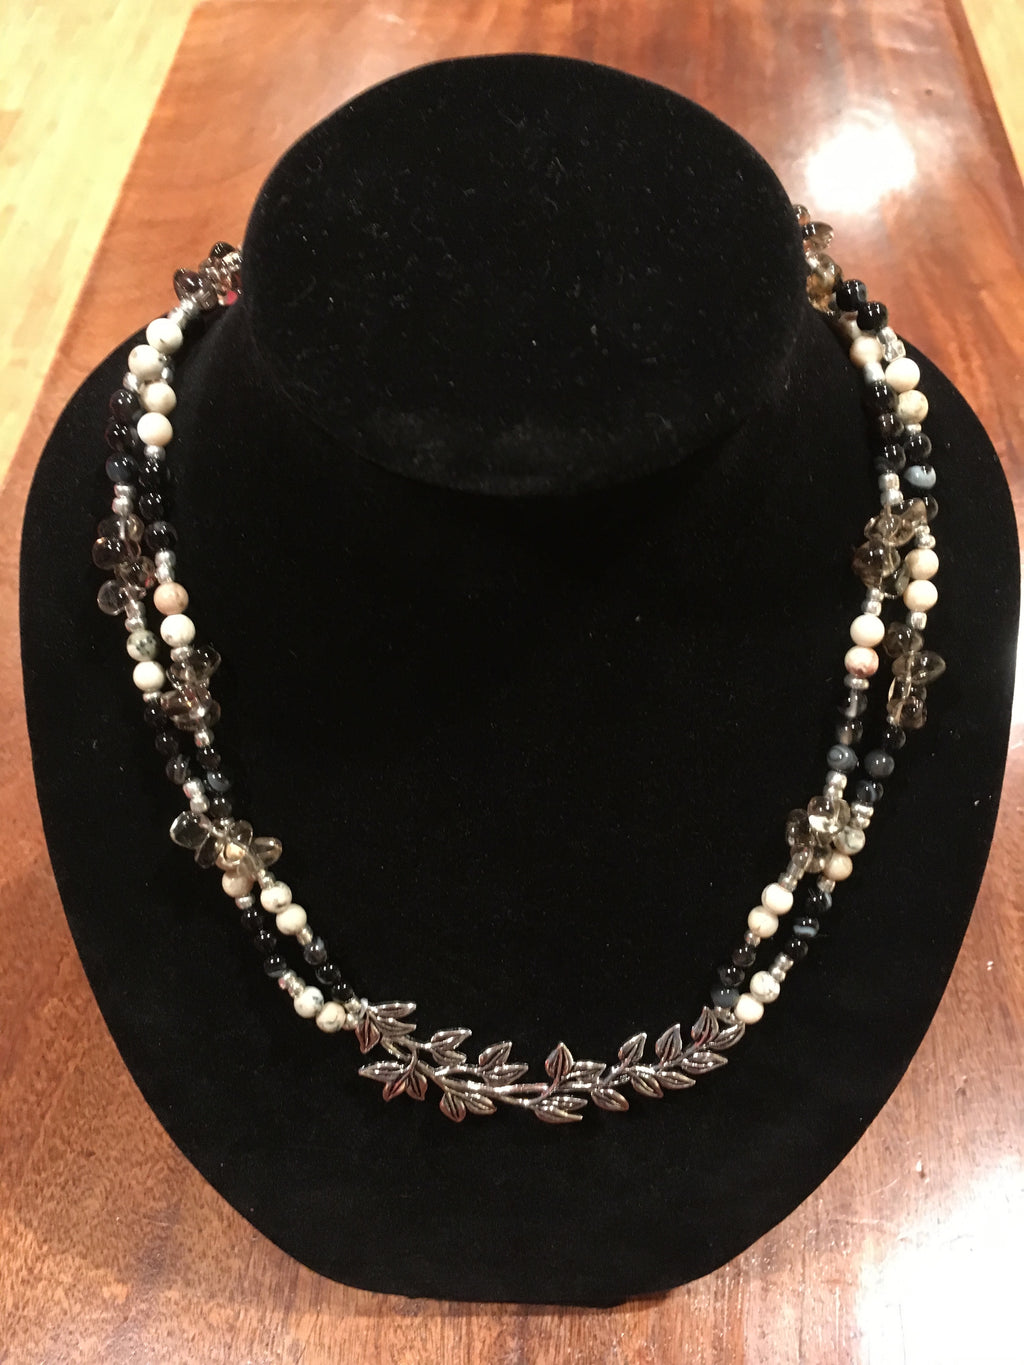 Double strand gemstone bead necklace with branch focal connector